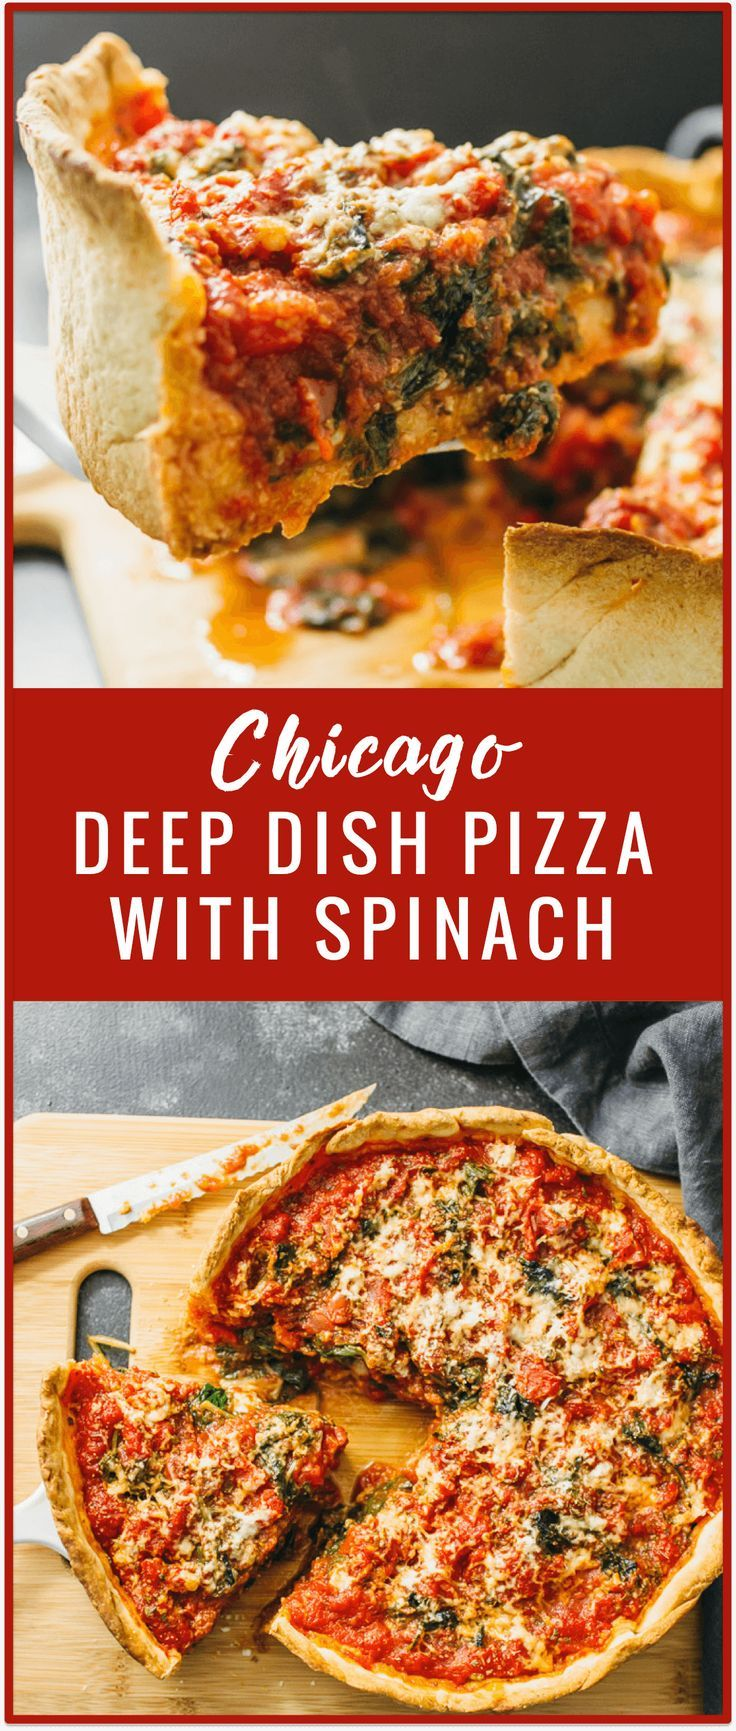 Chicago deep dish pizza with spinach - Don't live in Chicago but craving deep dish pizza? No problem! In this recipe, I'll show you how to make homemade Chicago deep dish pizza with spinach from scratch! The dough is easy to prepare and the filling can be of your own choosing. - http://savorytooth.com